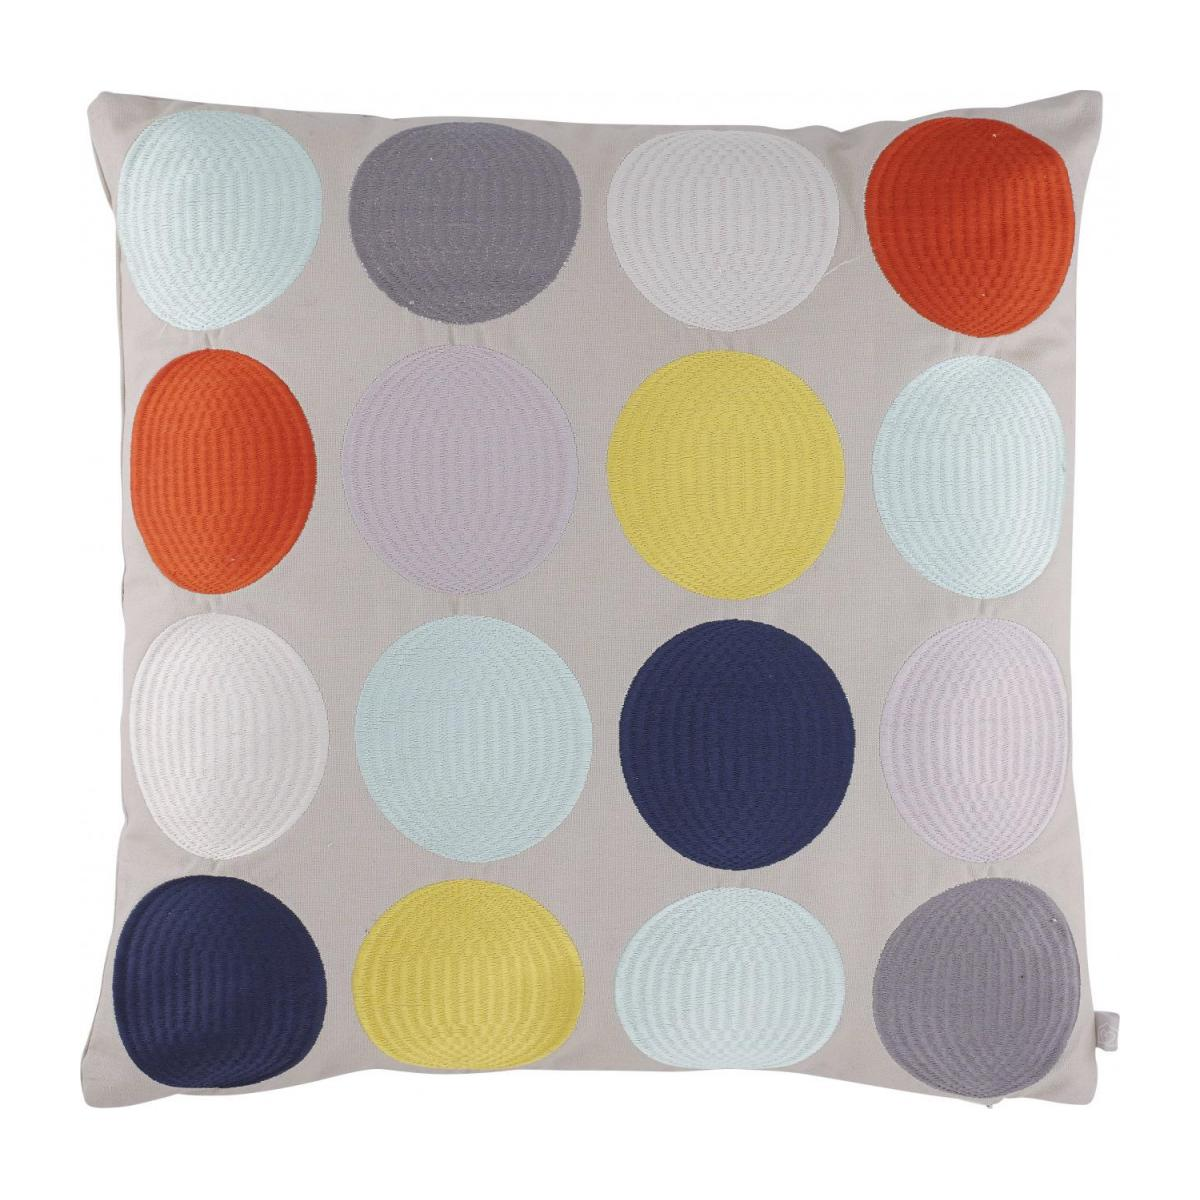 Coussin n°1